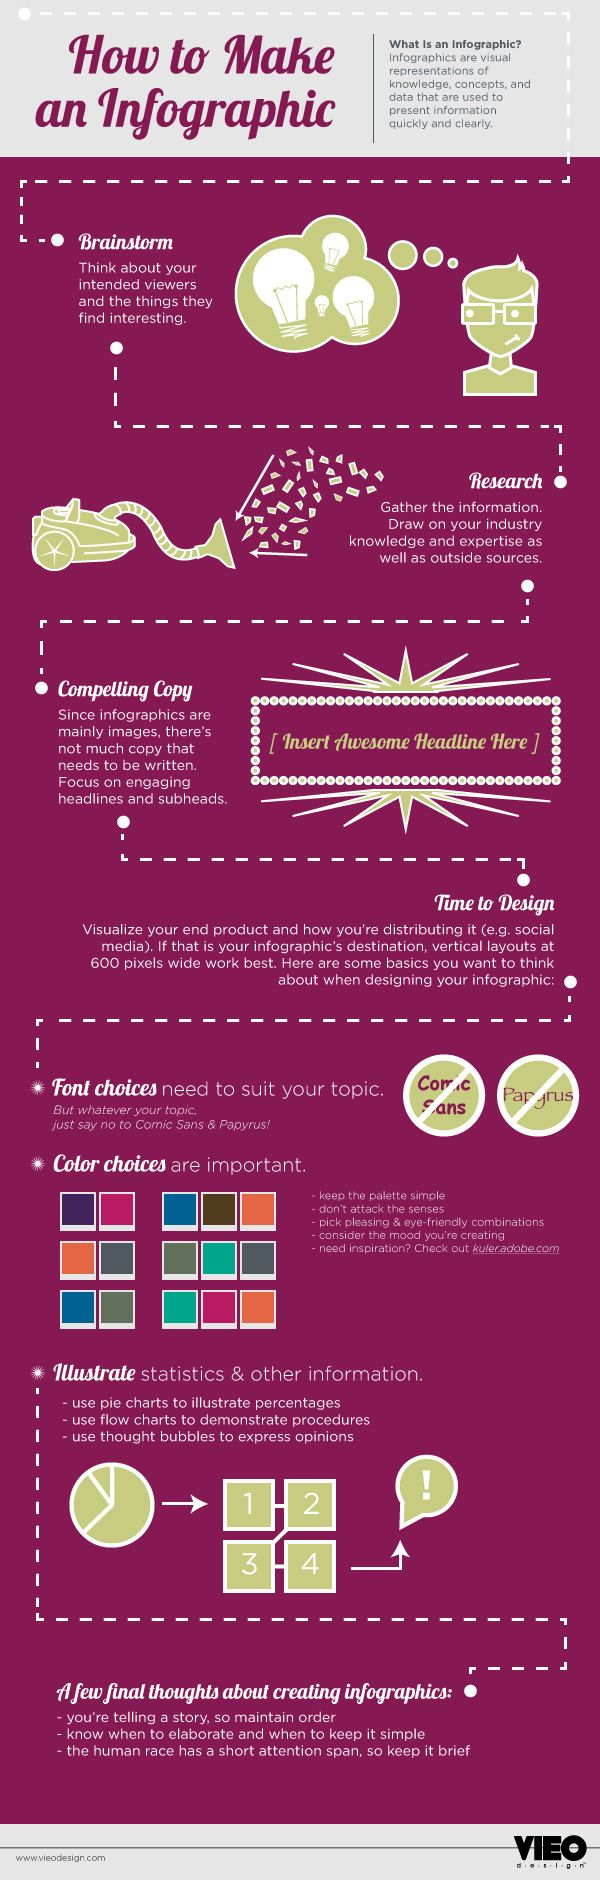 How to Make an #Infographic #infografía